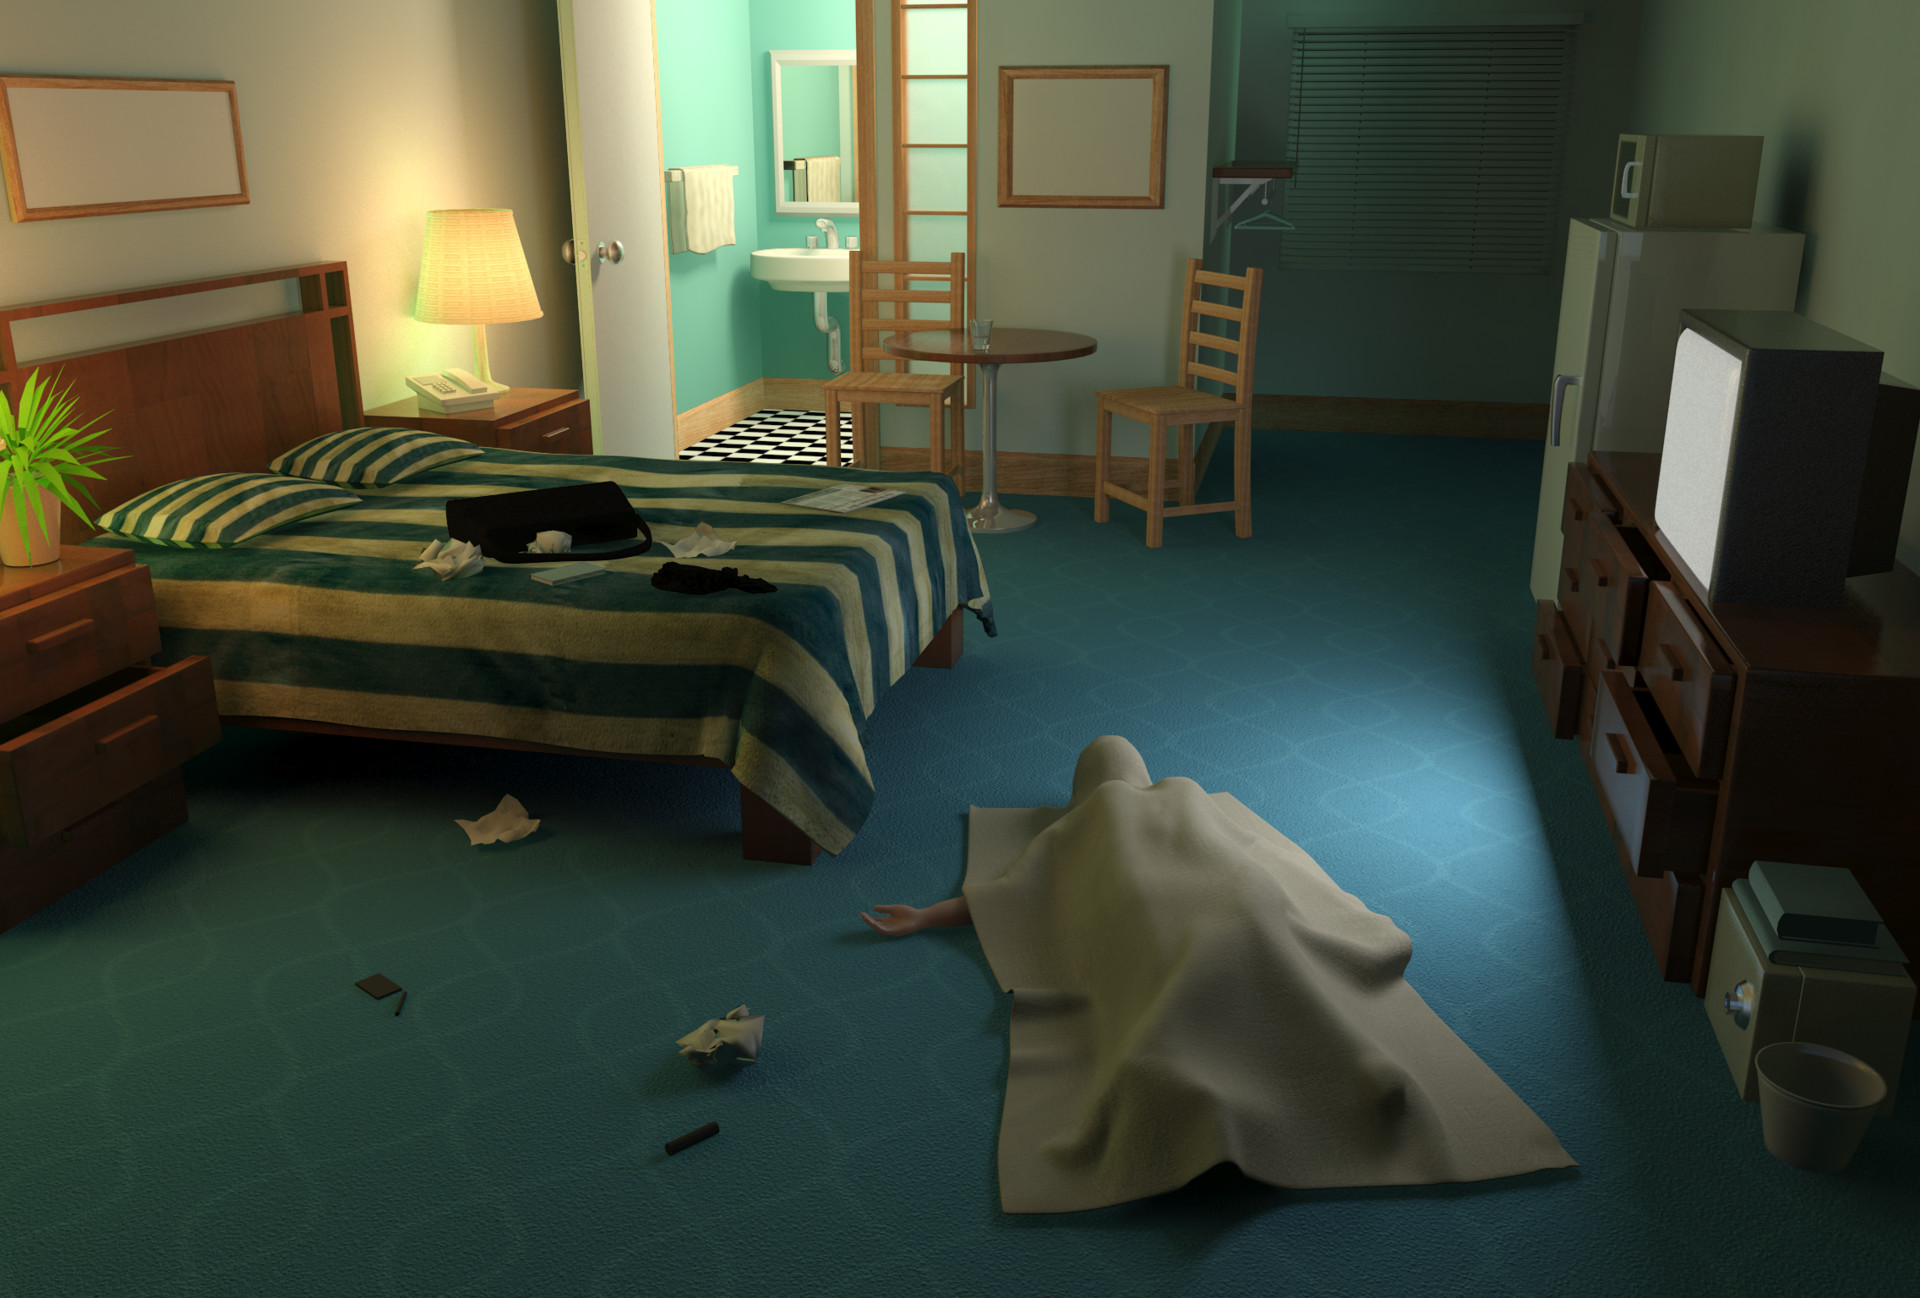 Motel Room scene (not final scene in game. Final was modified by another artist)